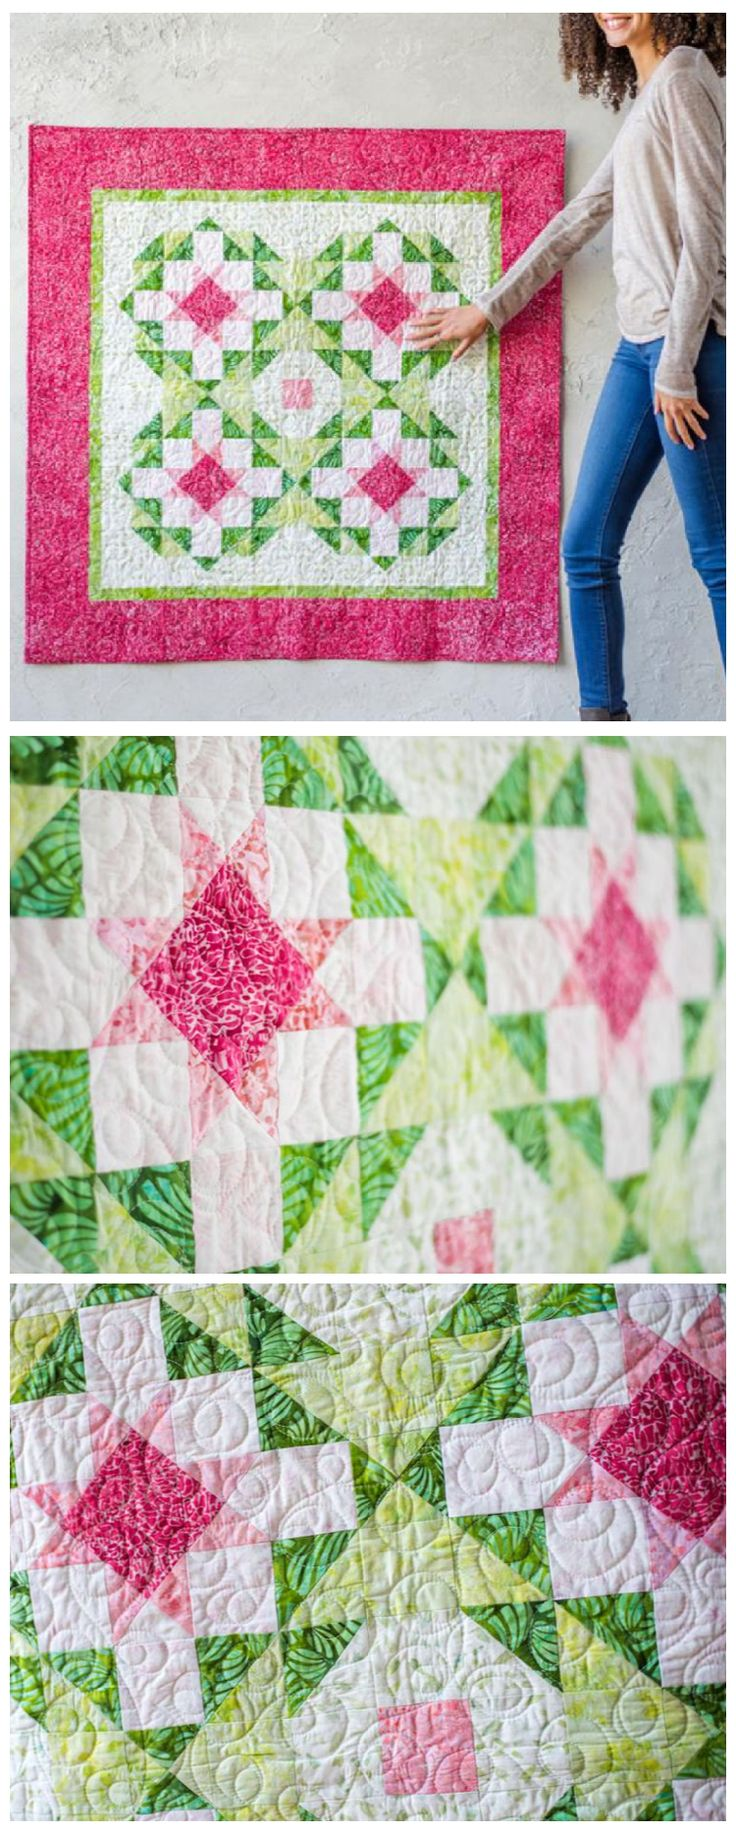 Sweet Treat Quilt kit by Craftsy.  | This delightful wall hanging comes together easily with half-square and   quarter-square triangle units. Add a few simple borders, and voila!   You'll be ready to brighten up your home. The Sweet Treat kit features   gorgeous Boundless Batiks, and comes with all the fabrics you'll need to   complete the quilt top and binding.  This is an affiliate link.